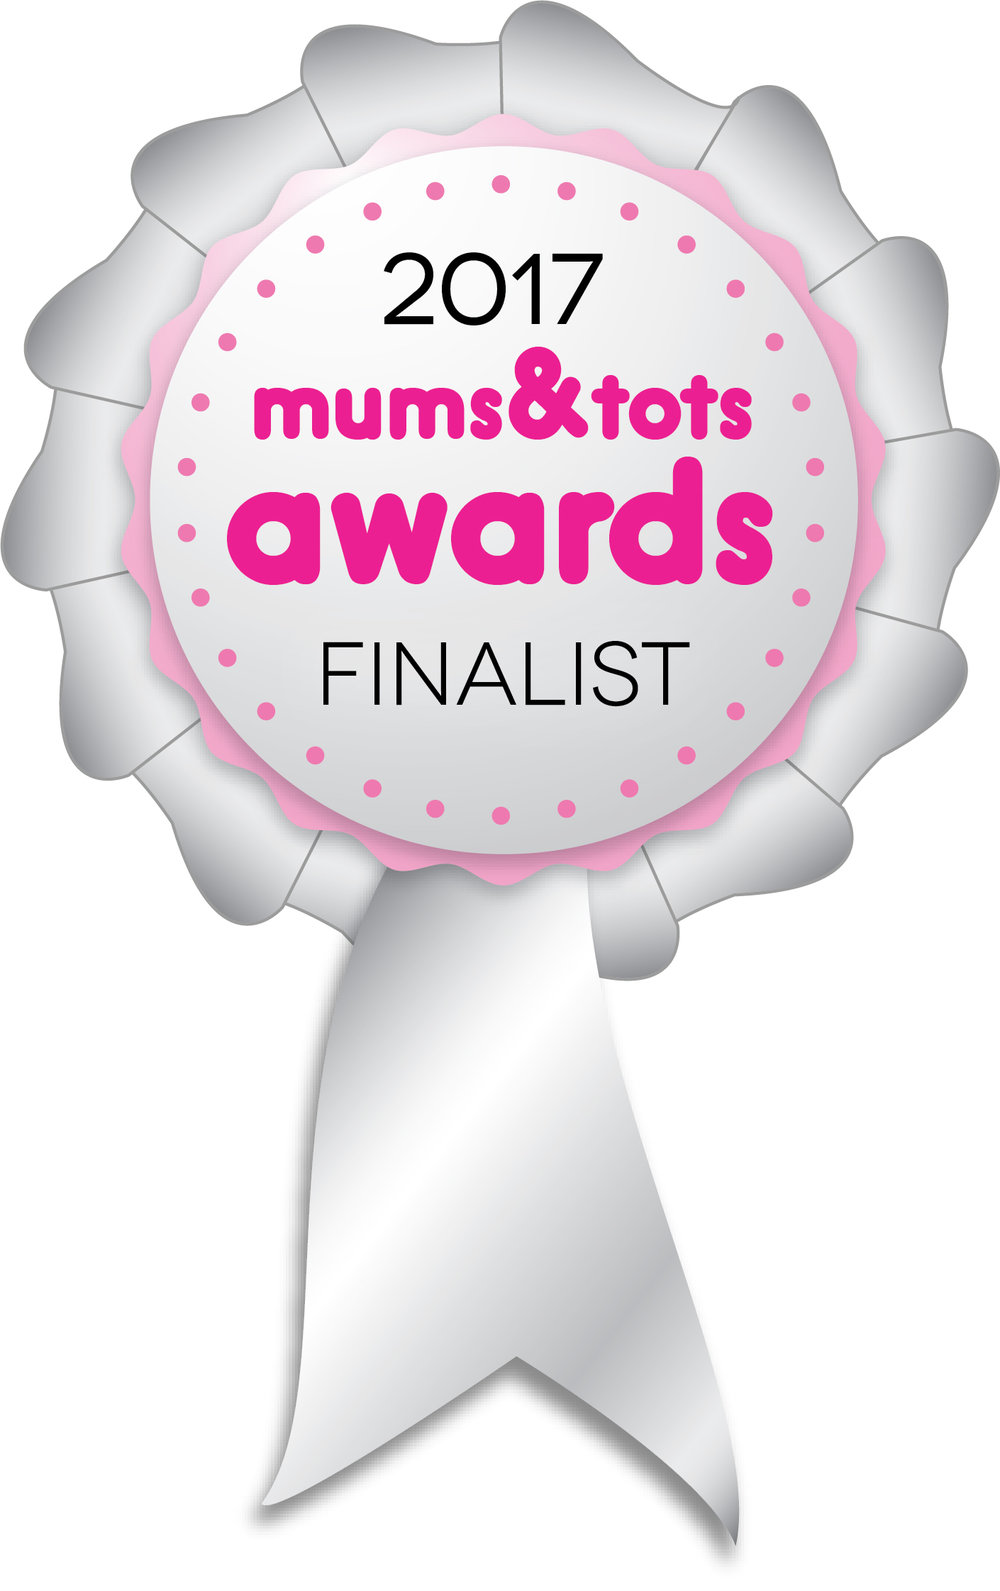 Mums-and-Tots-Awards-Finalist-Rosette-2017.jpg